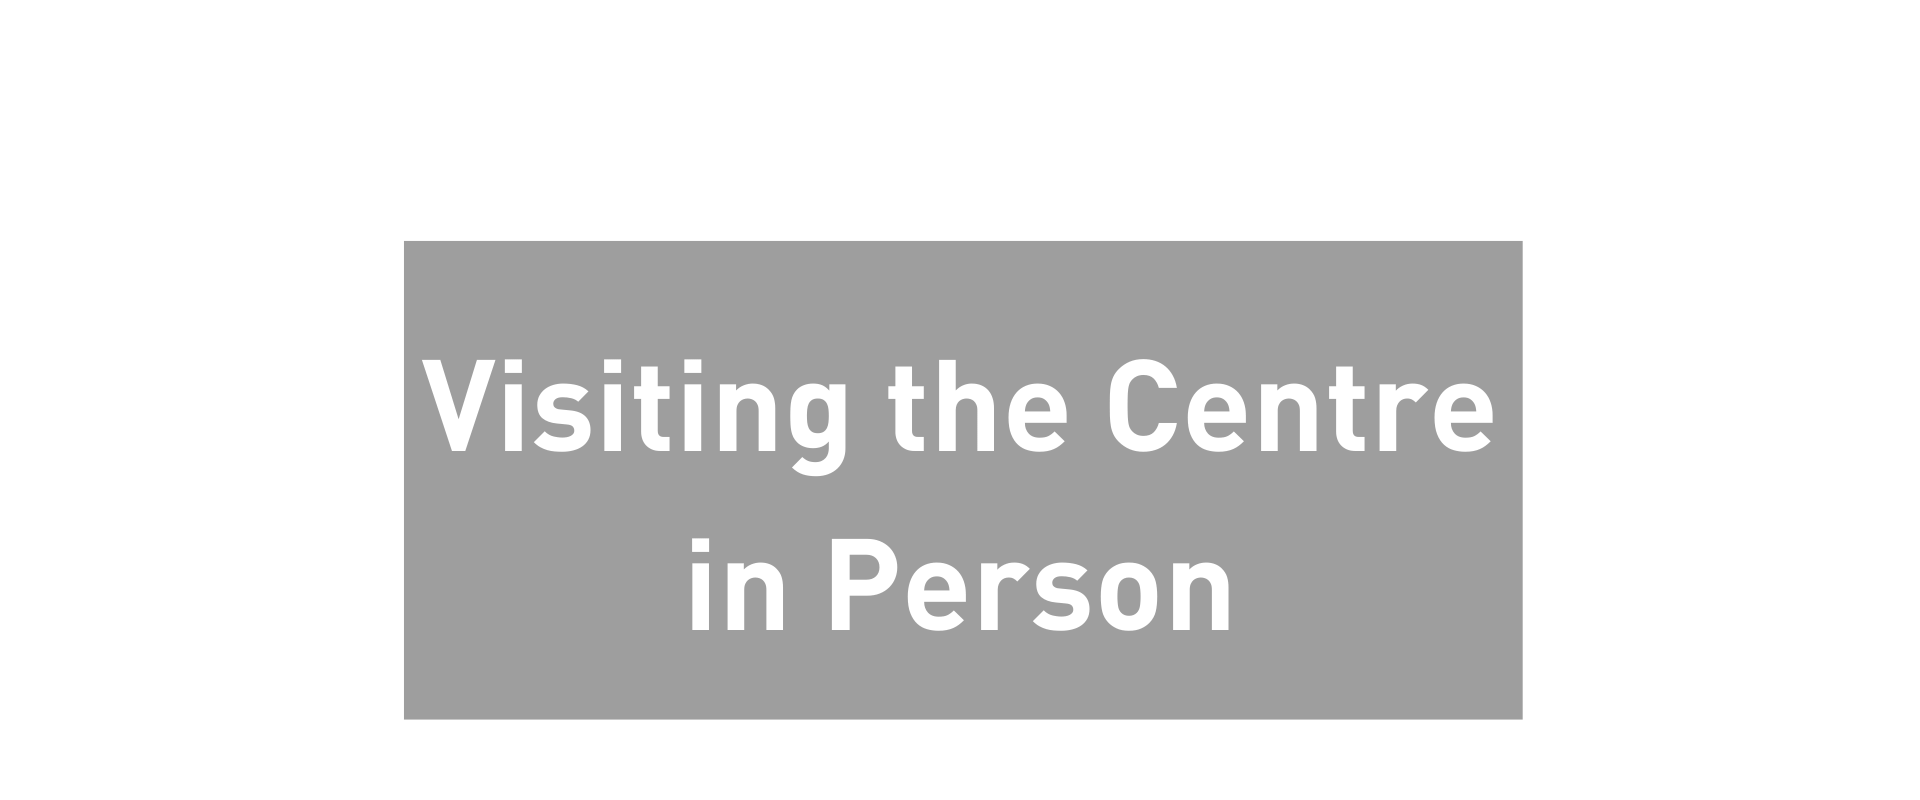 Visiting the Centre in Person